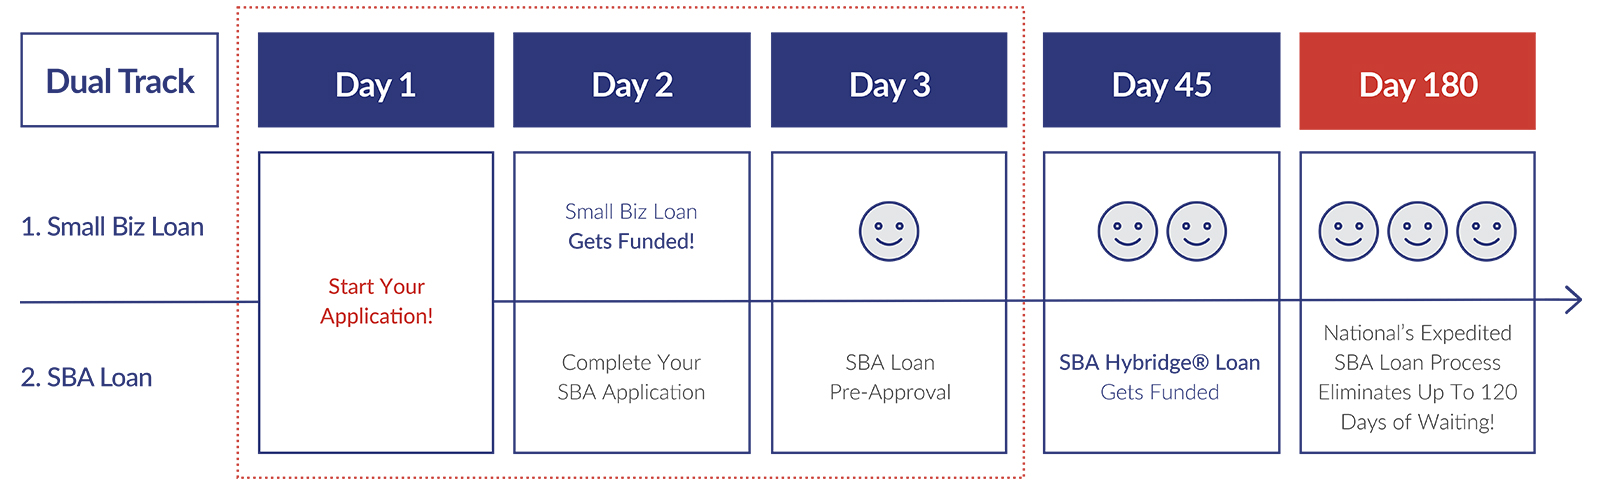 Your Funding Timeline With a Hybridge® SBA Loan